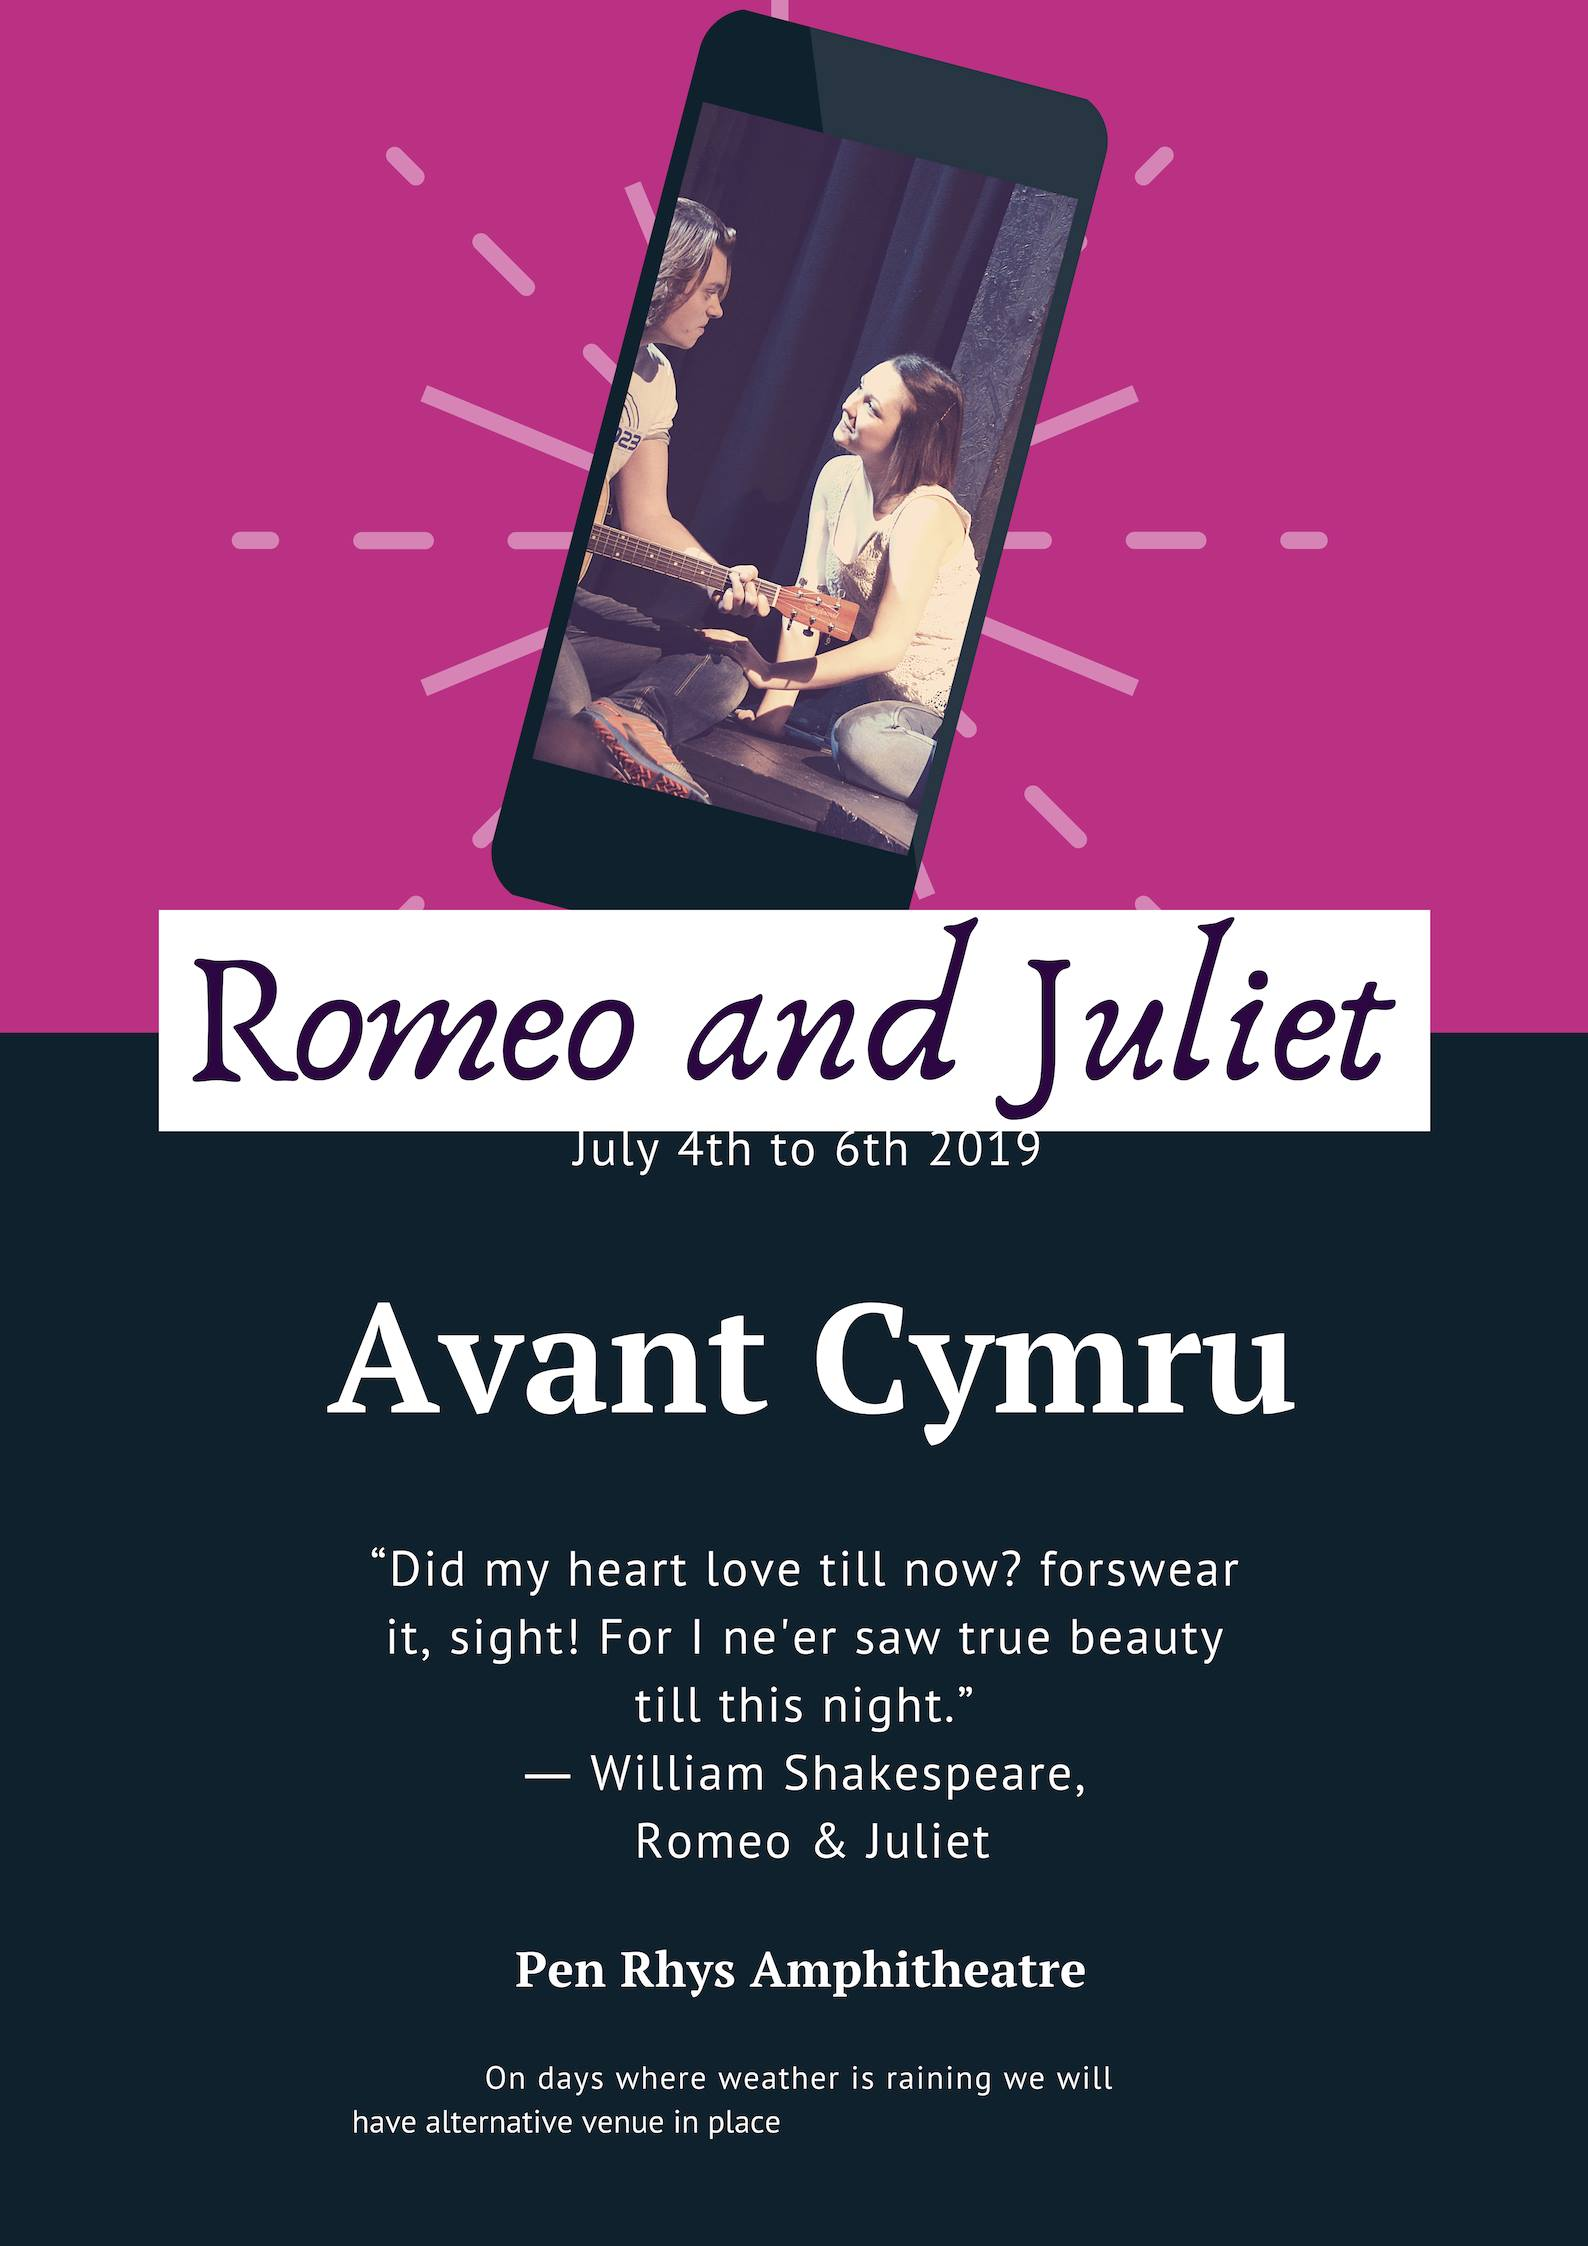 Romeo and Juliet banner image